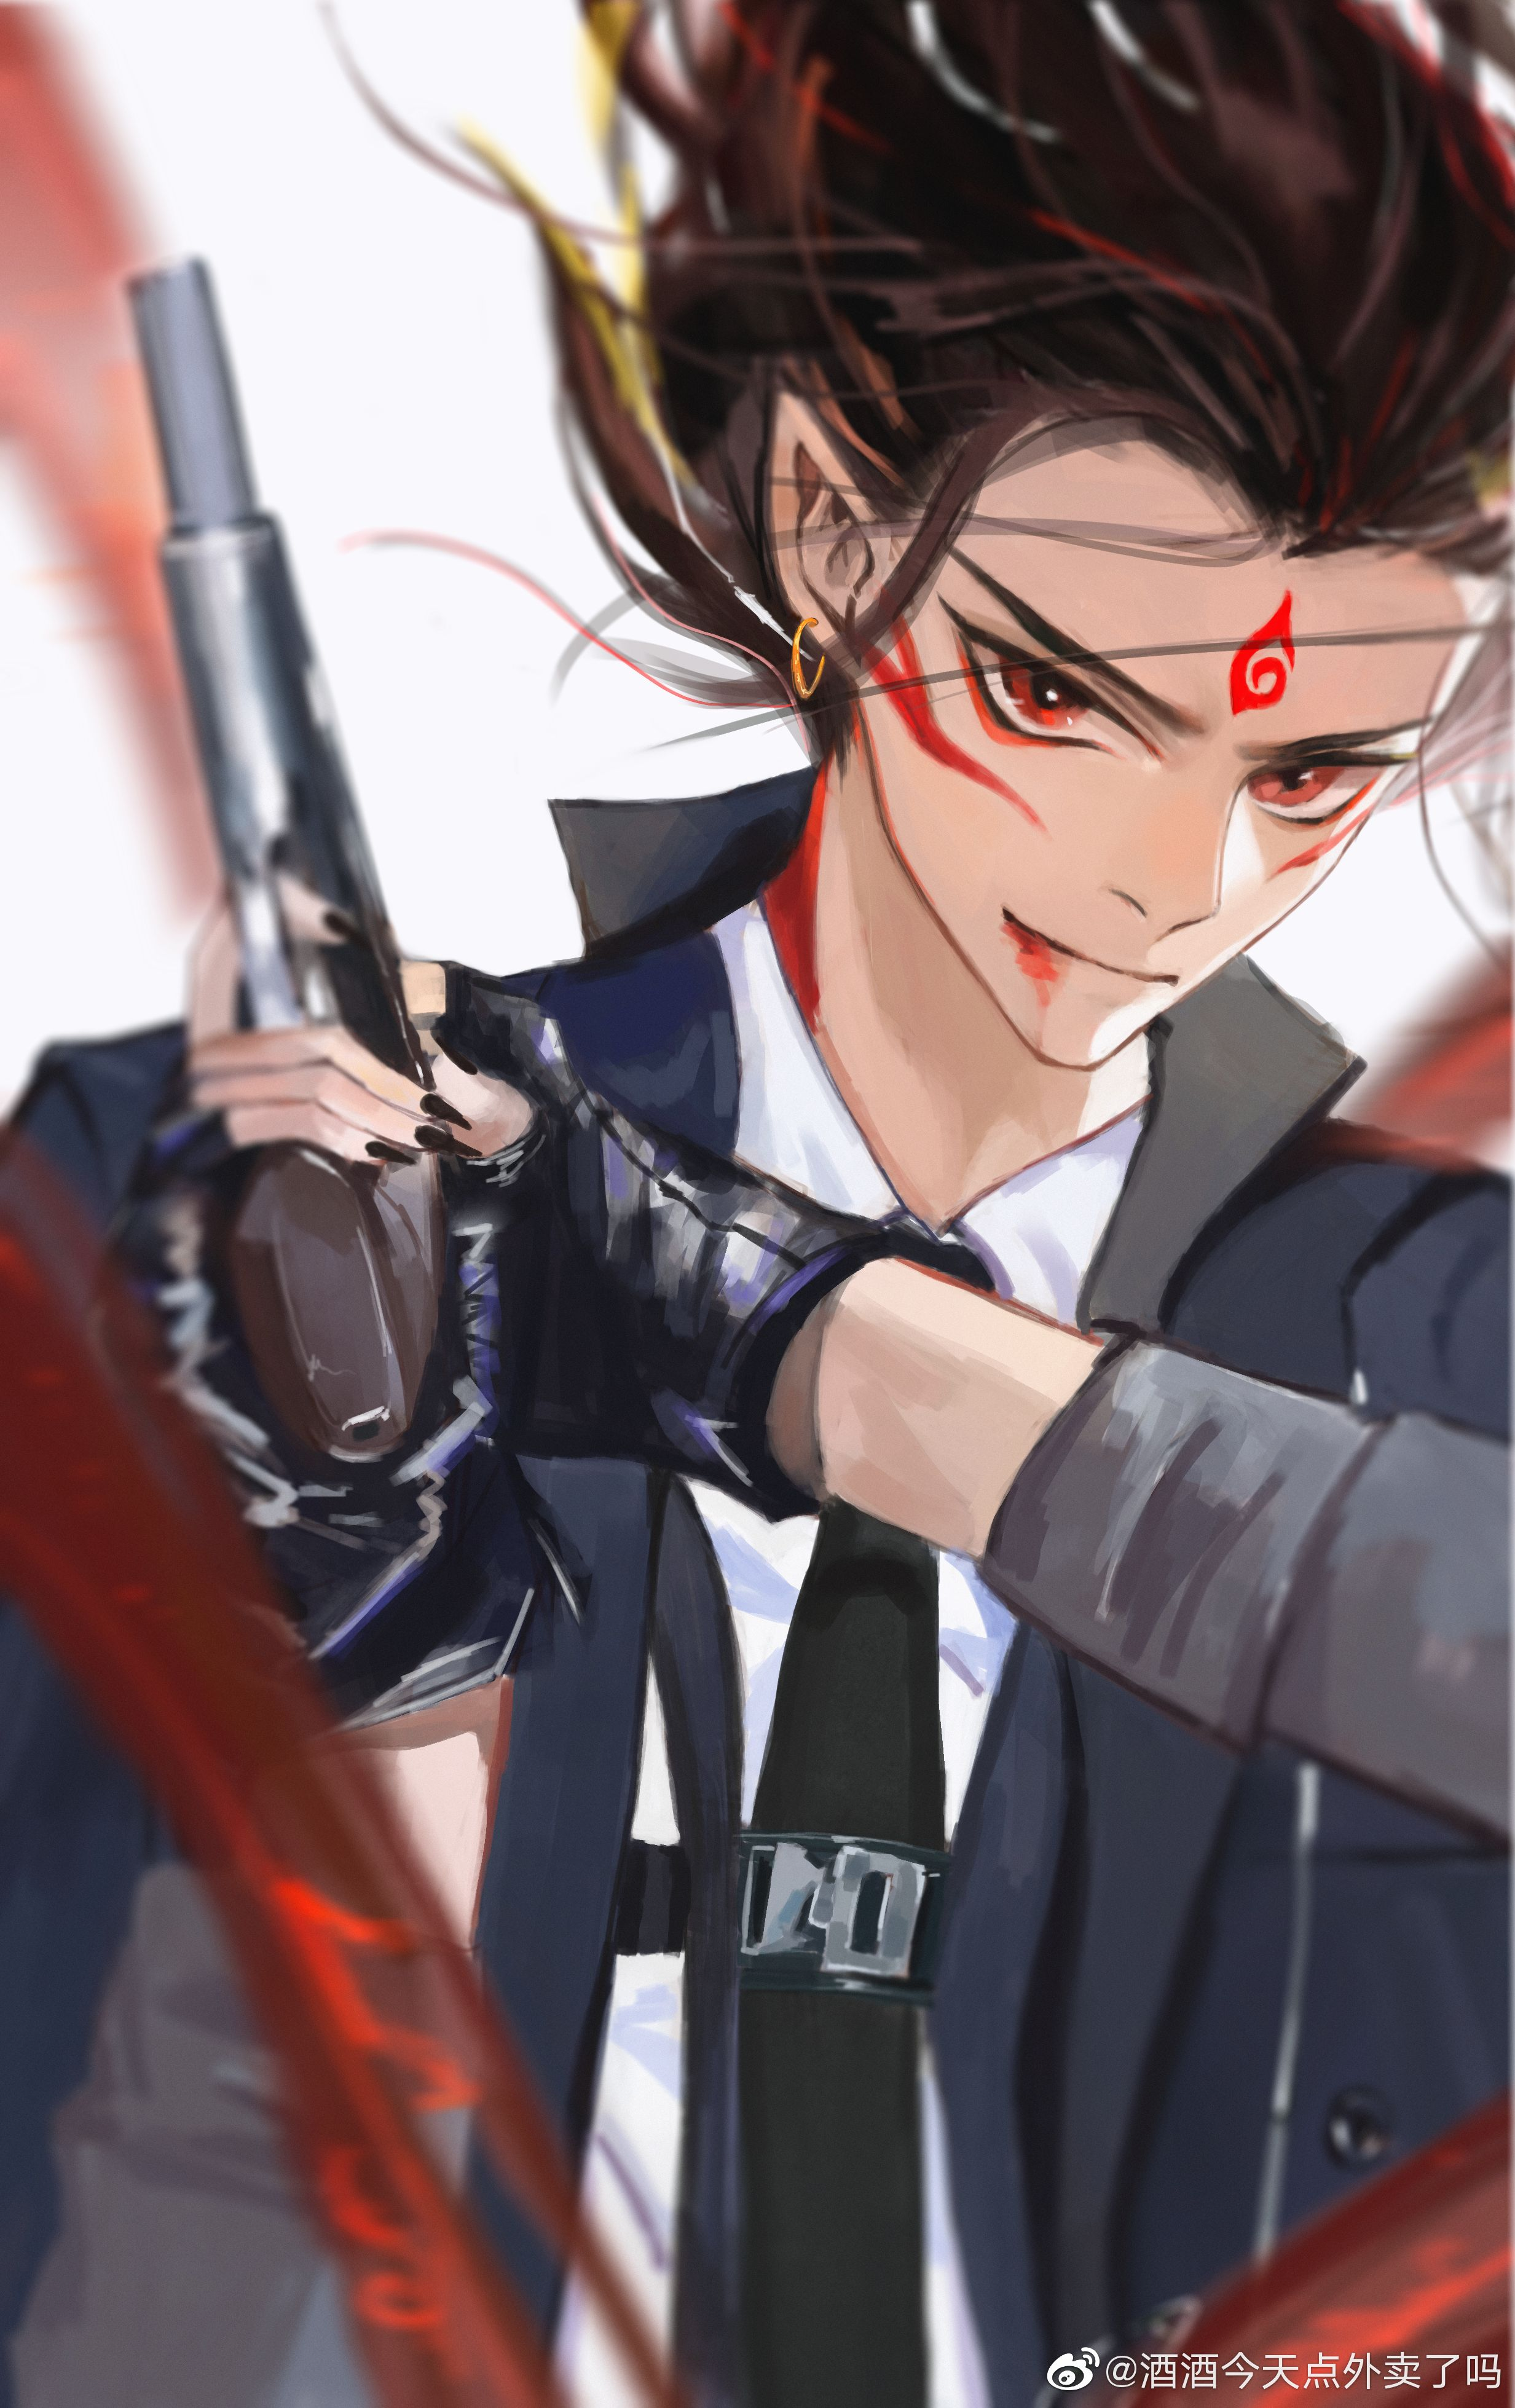 Pin by 佳潔 謝 on 哪丙 Handsome anime, Anime, Handsome anime guys